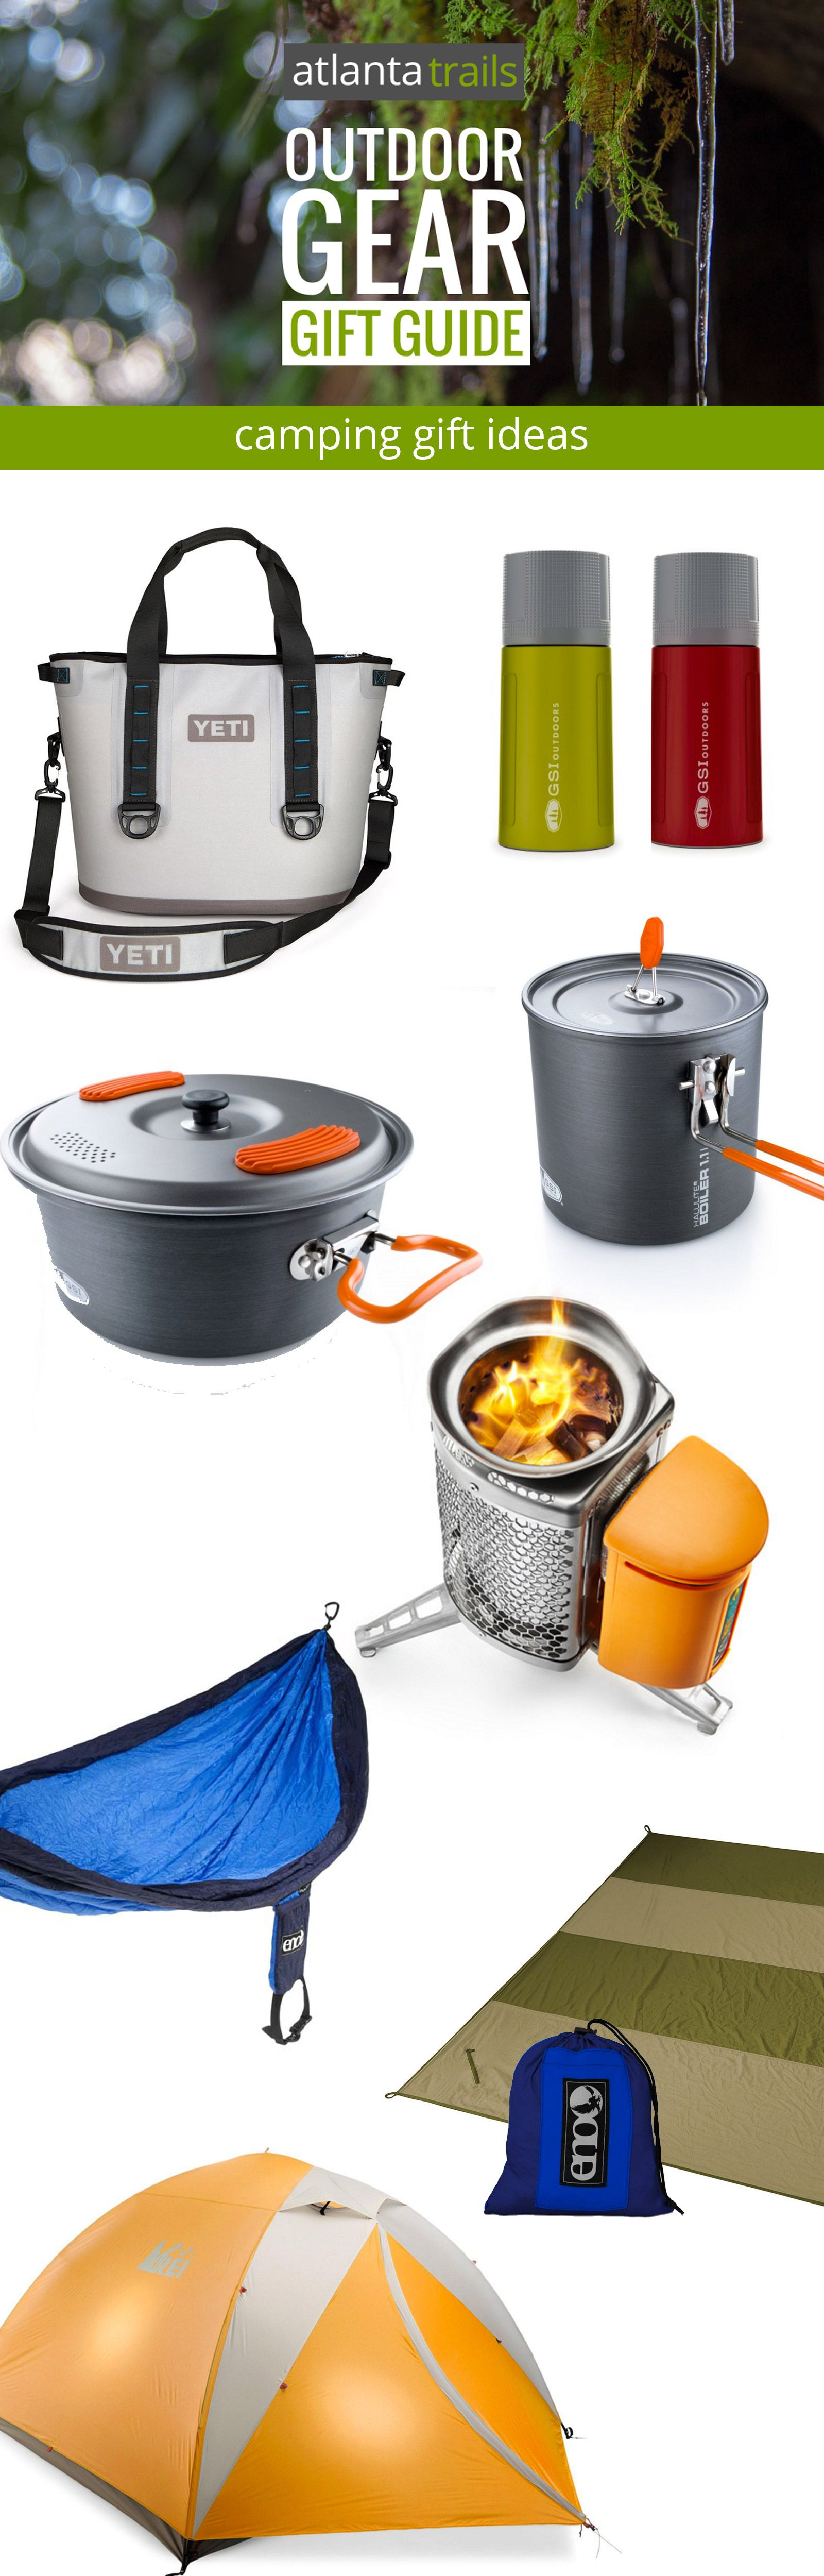 Camping gift ideas camping gifts gifts for campers